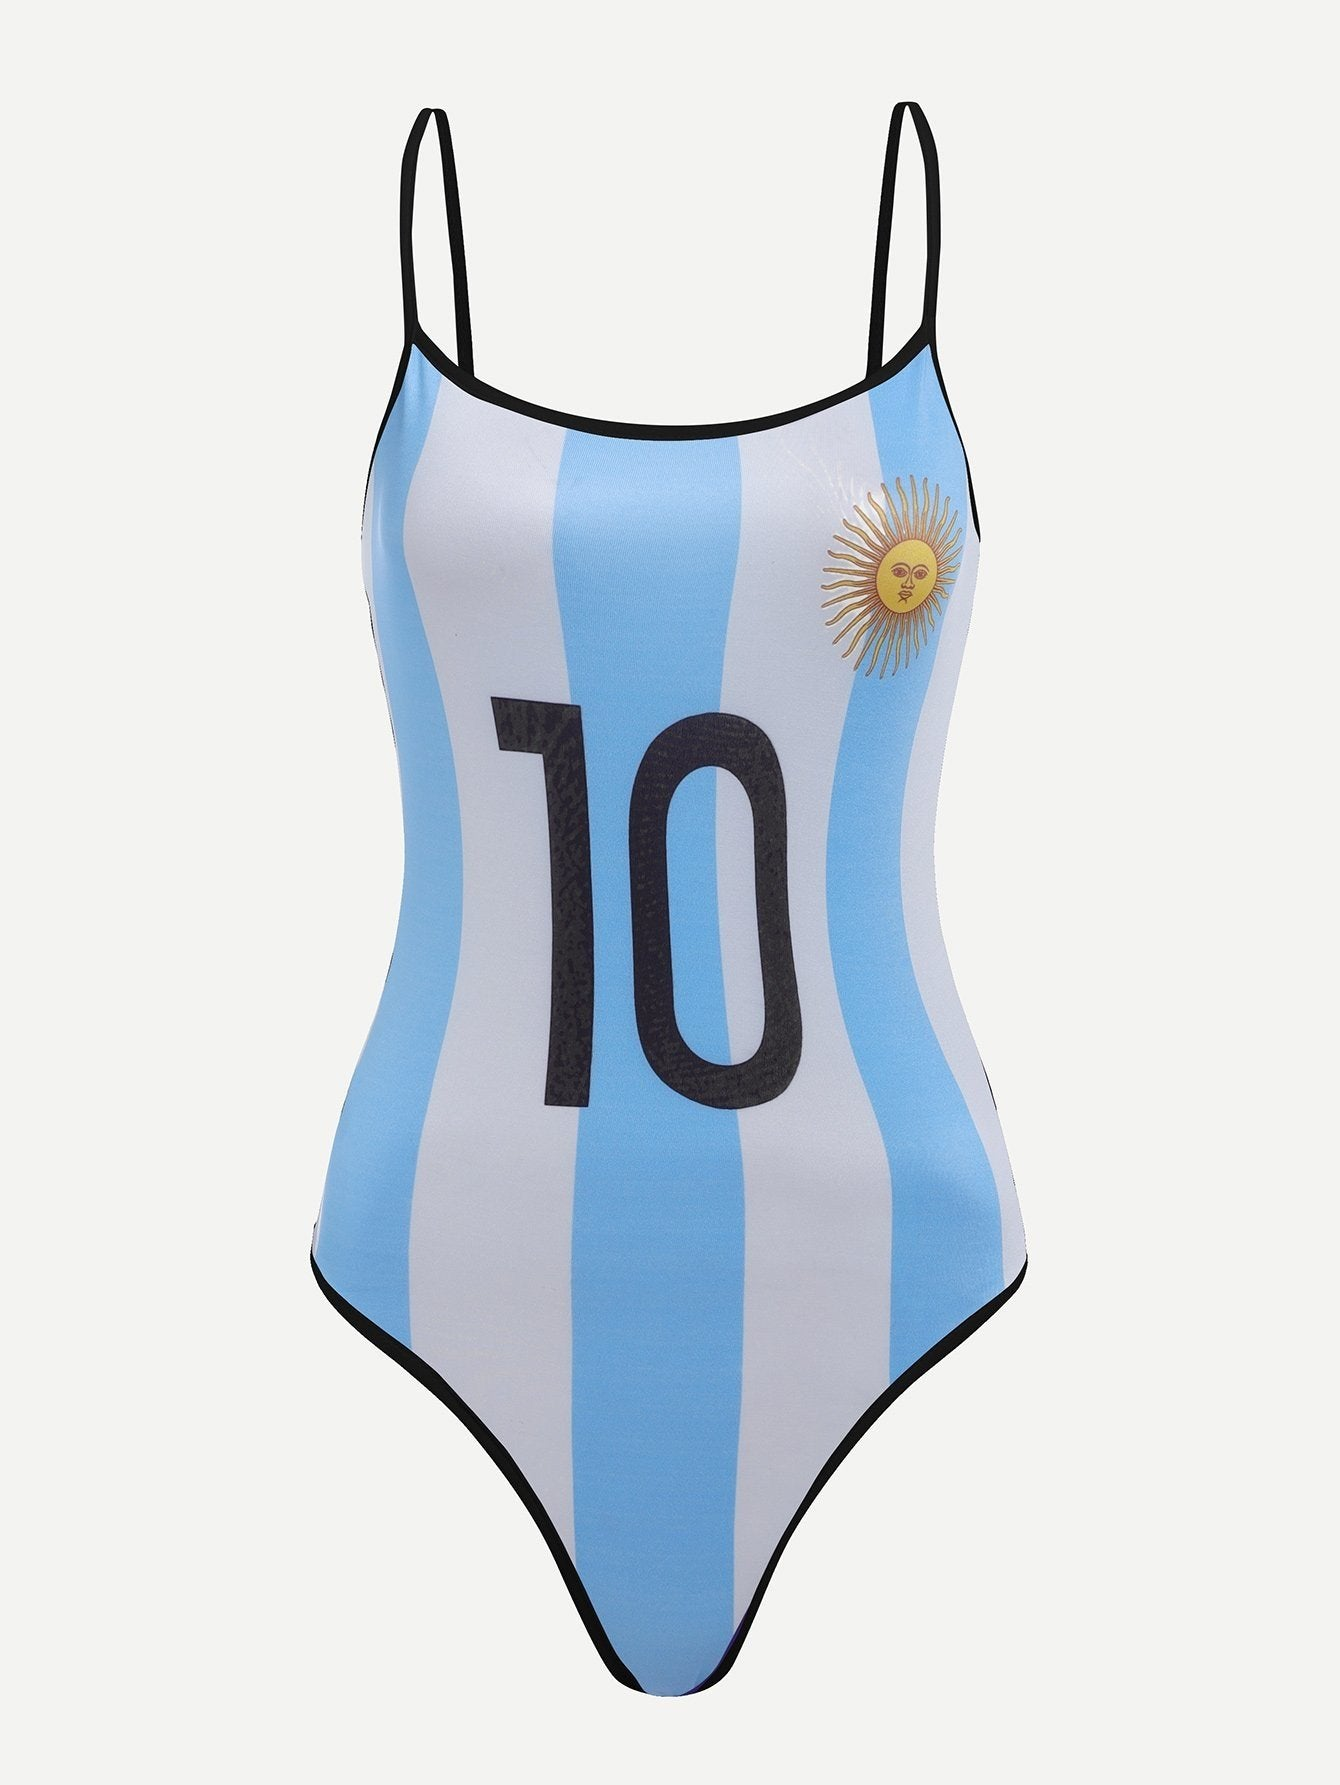 Ladies Argentina World Cup soccer bodysuit